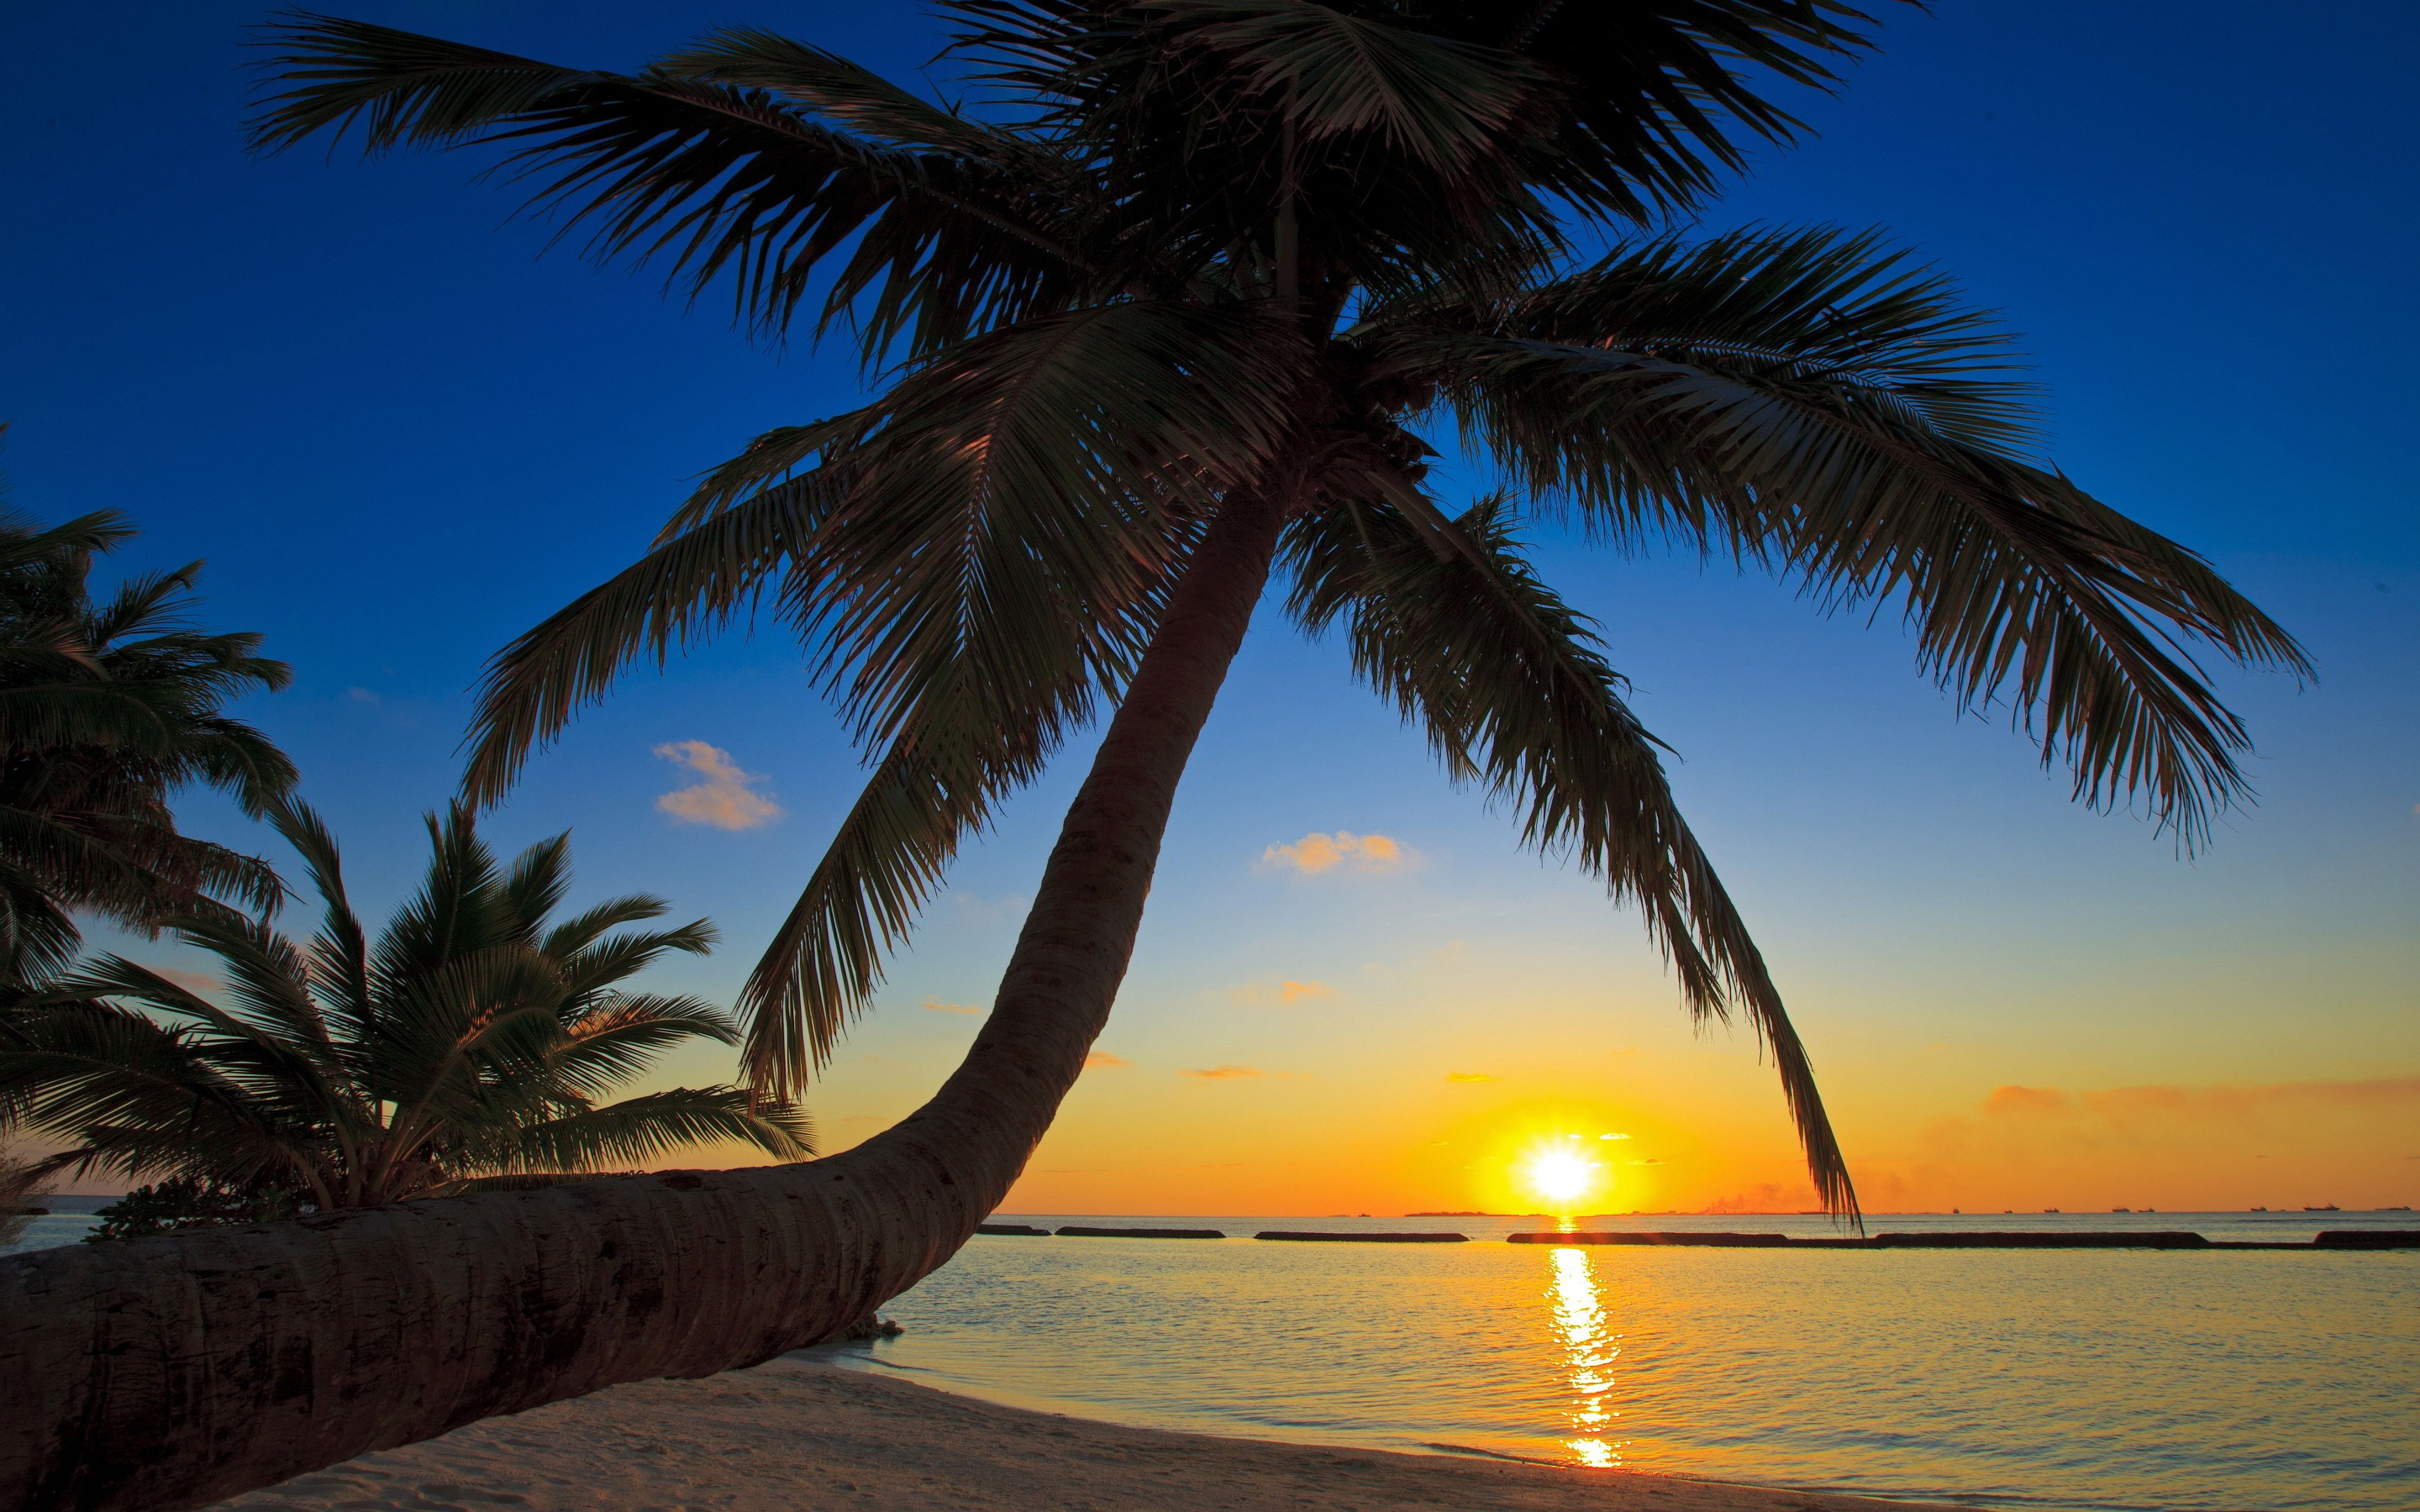 Sunset Beach Wallpaper 2880×1800 – High Definition Wallpaper | Daily  Screens id-7702